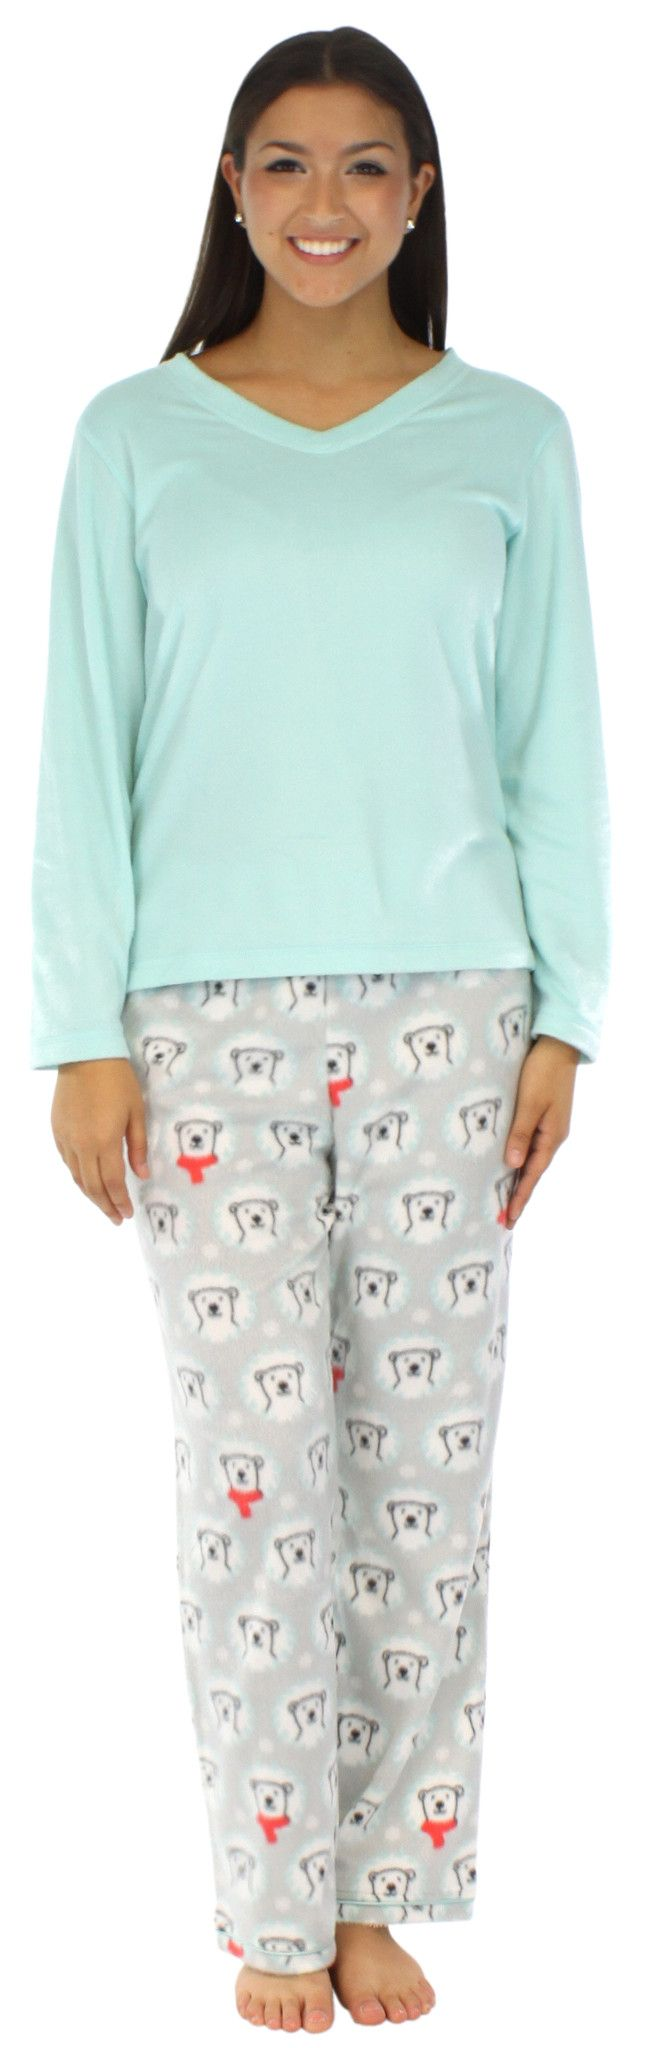 Frankie & Johnny long hair fleece pajama sets have a minky feel and are super soft and comfortable with just enough stretch that you will want to wear them all day long - Fleece - Coordinating solid l